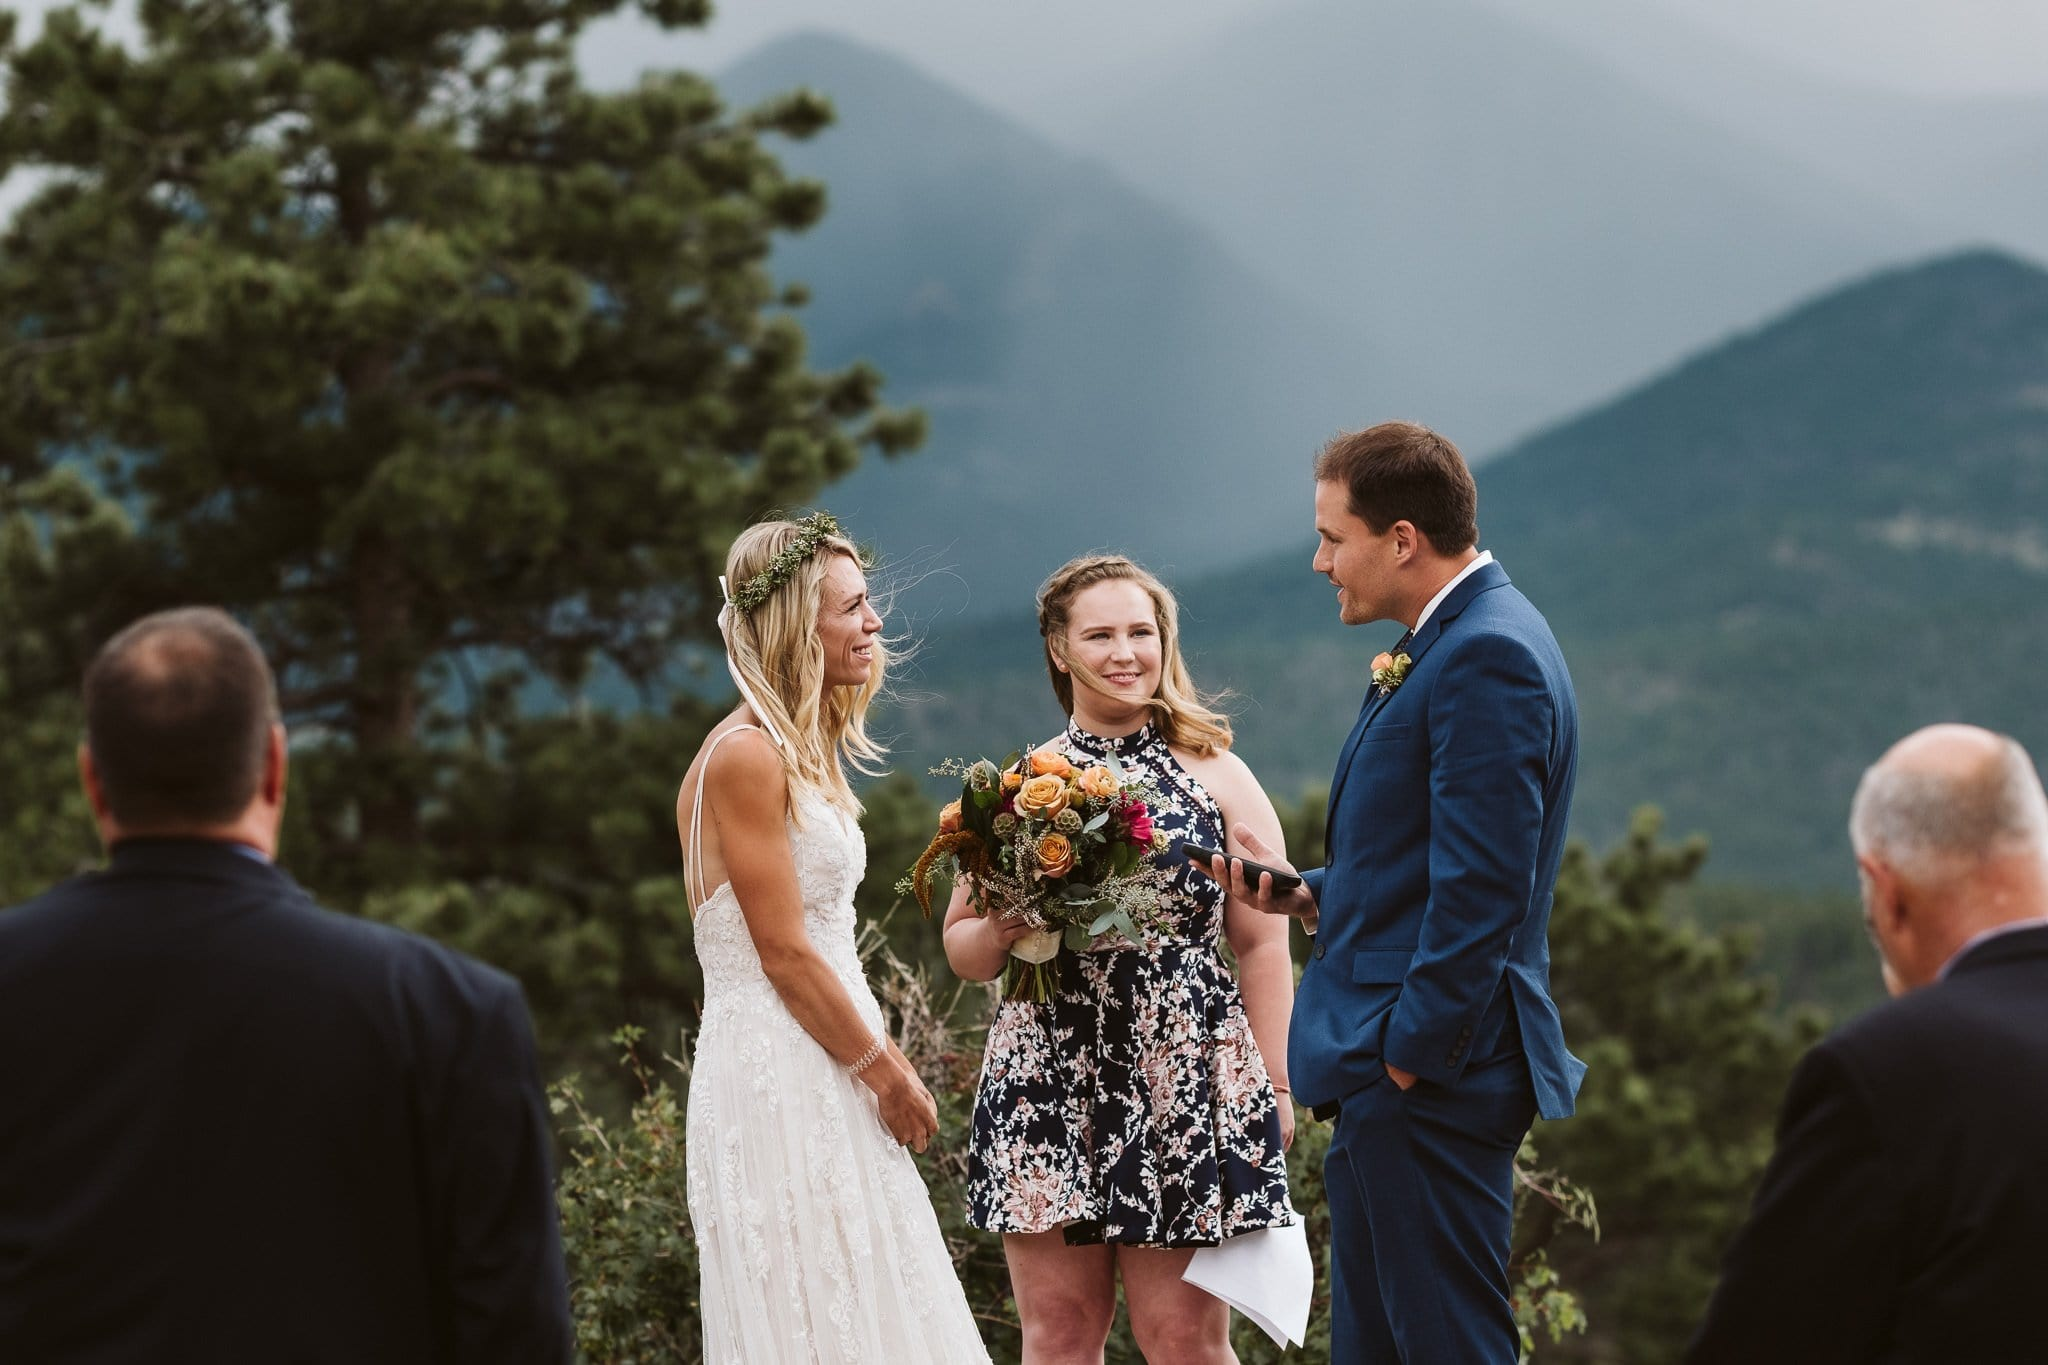 Elopement ceremony at 3M Curve in Rocky Mountain National Park, Colorado elopement photographer